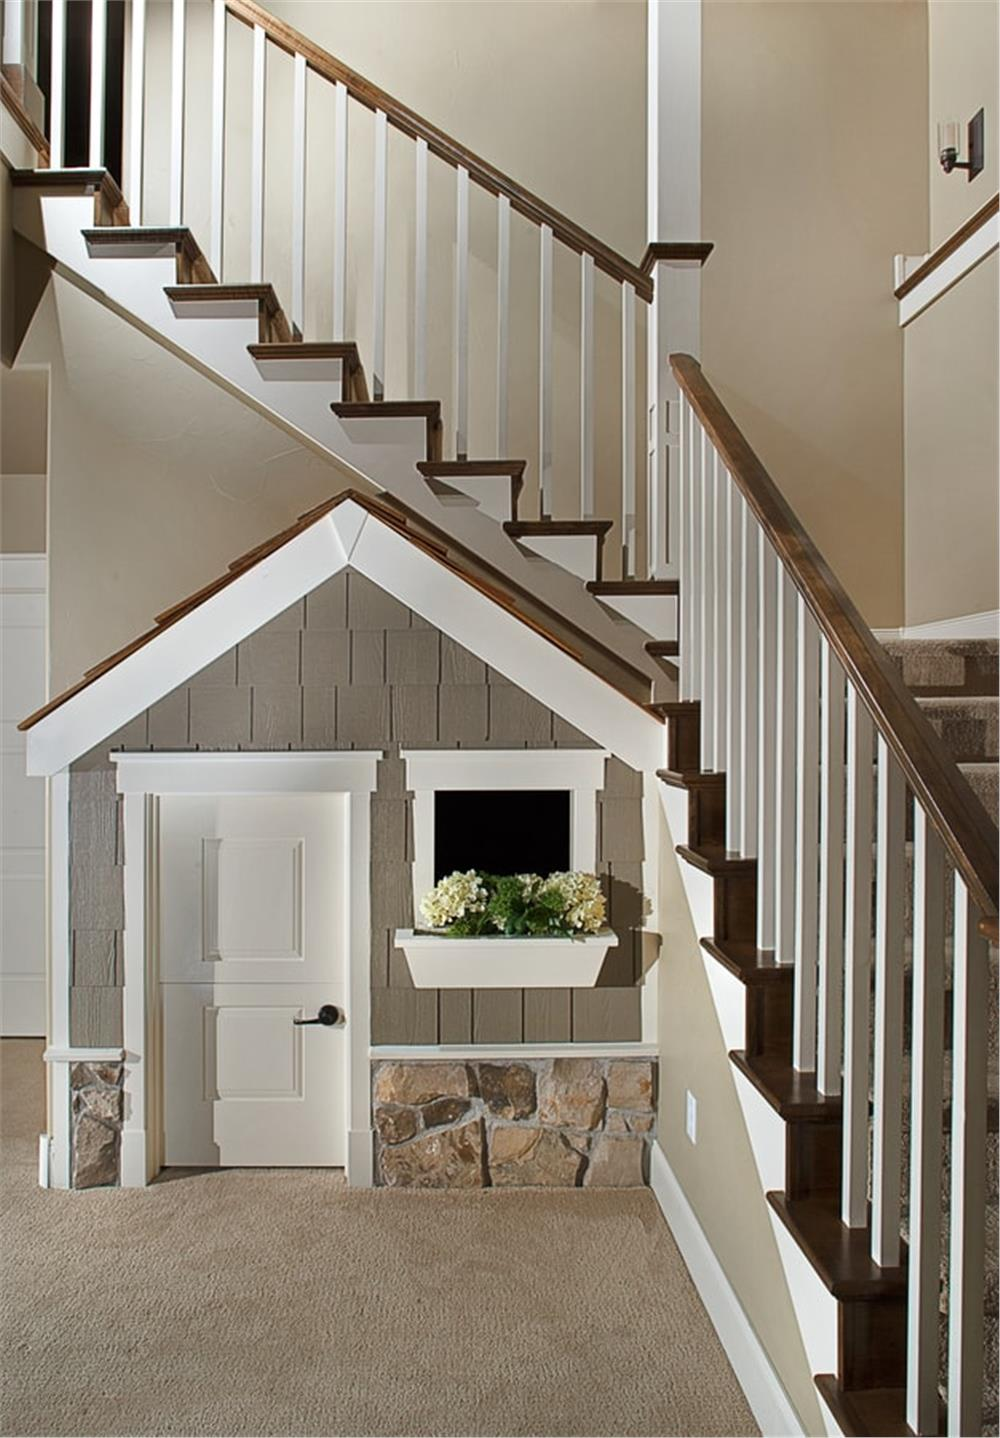 Staircase in a two-story home with creative storage under the landing